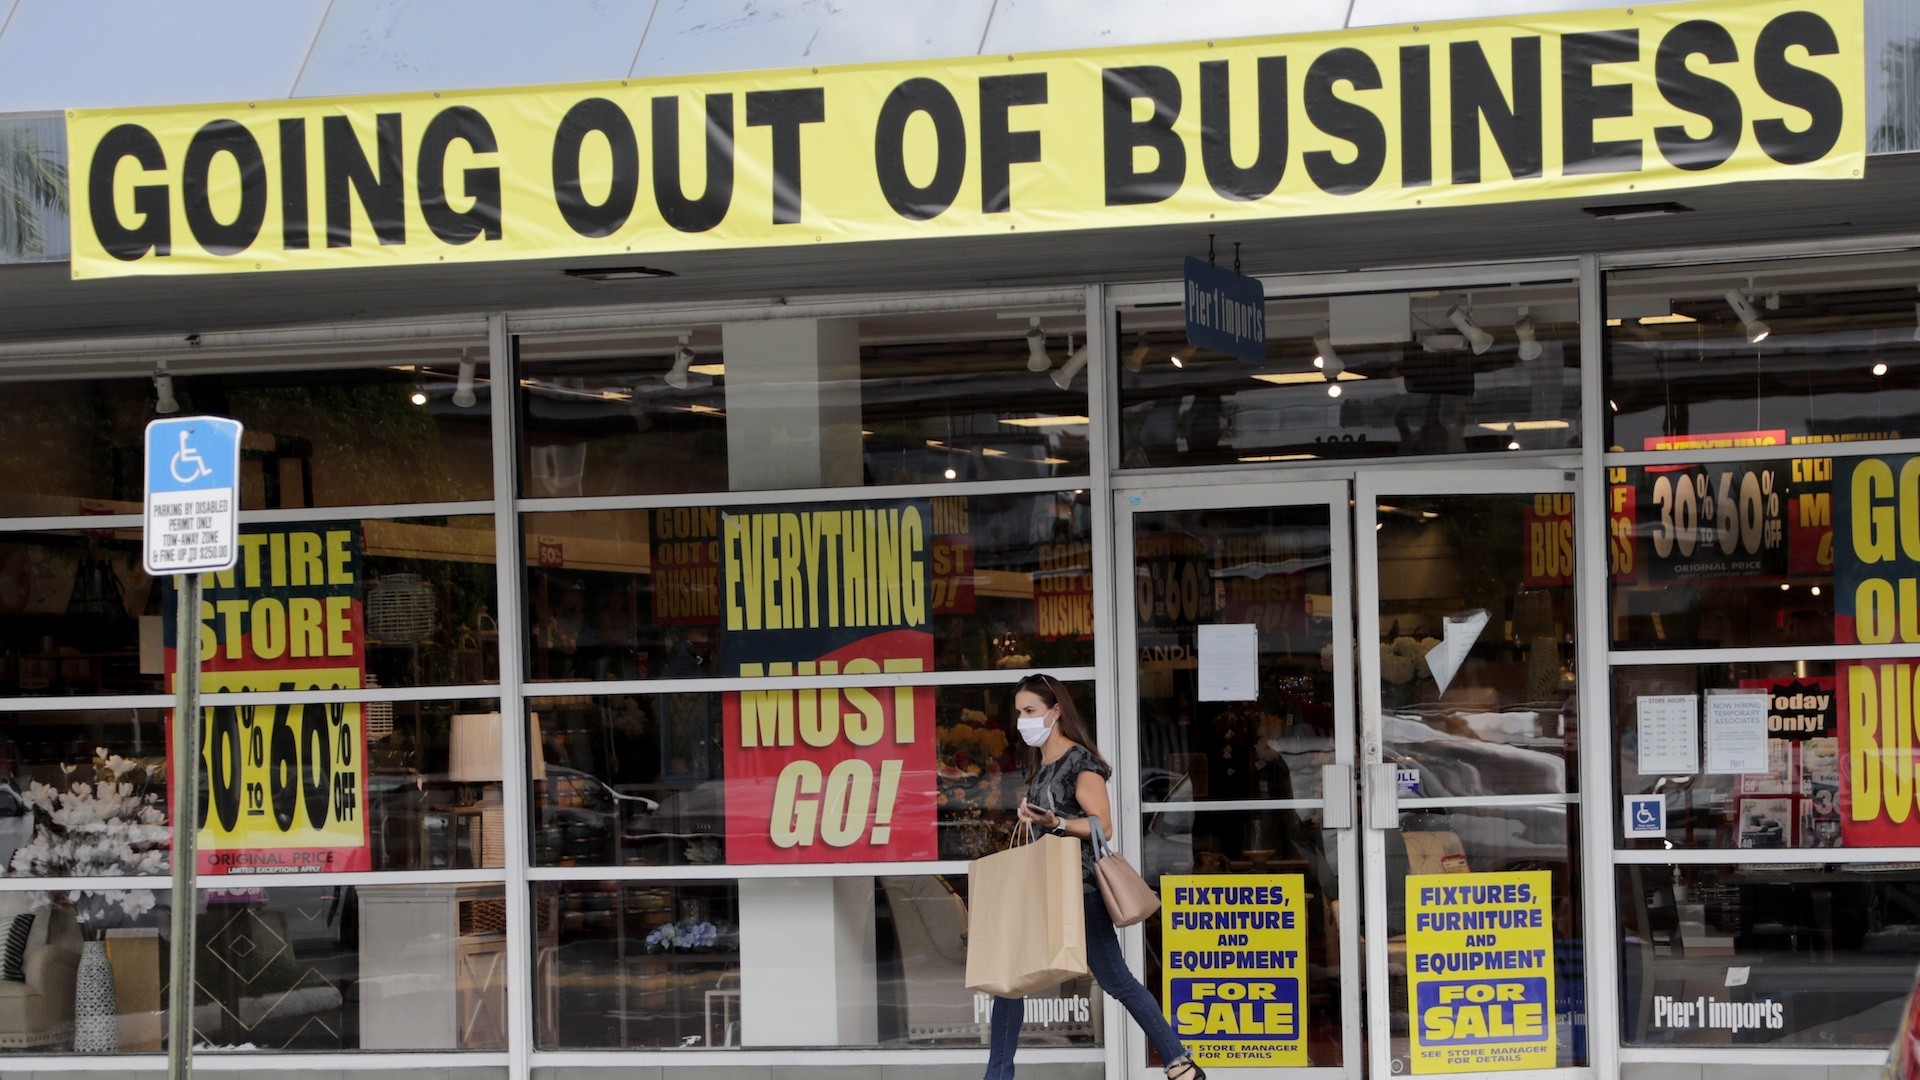 In this Aug. 6, 2020, file photo, a customer leaves a Pier 1 retail store, which is going out of business, during the coronavirus pandemic in Coral Gables, Fla. The Labor Department reported unemployment numbers Thursday, Sept. 3. (AP Photo/Lynne Sladky, File)